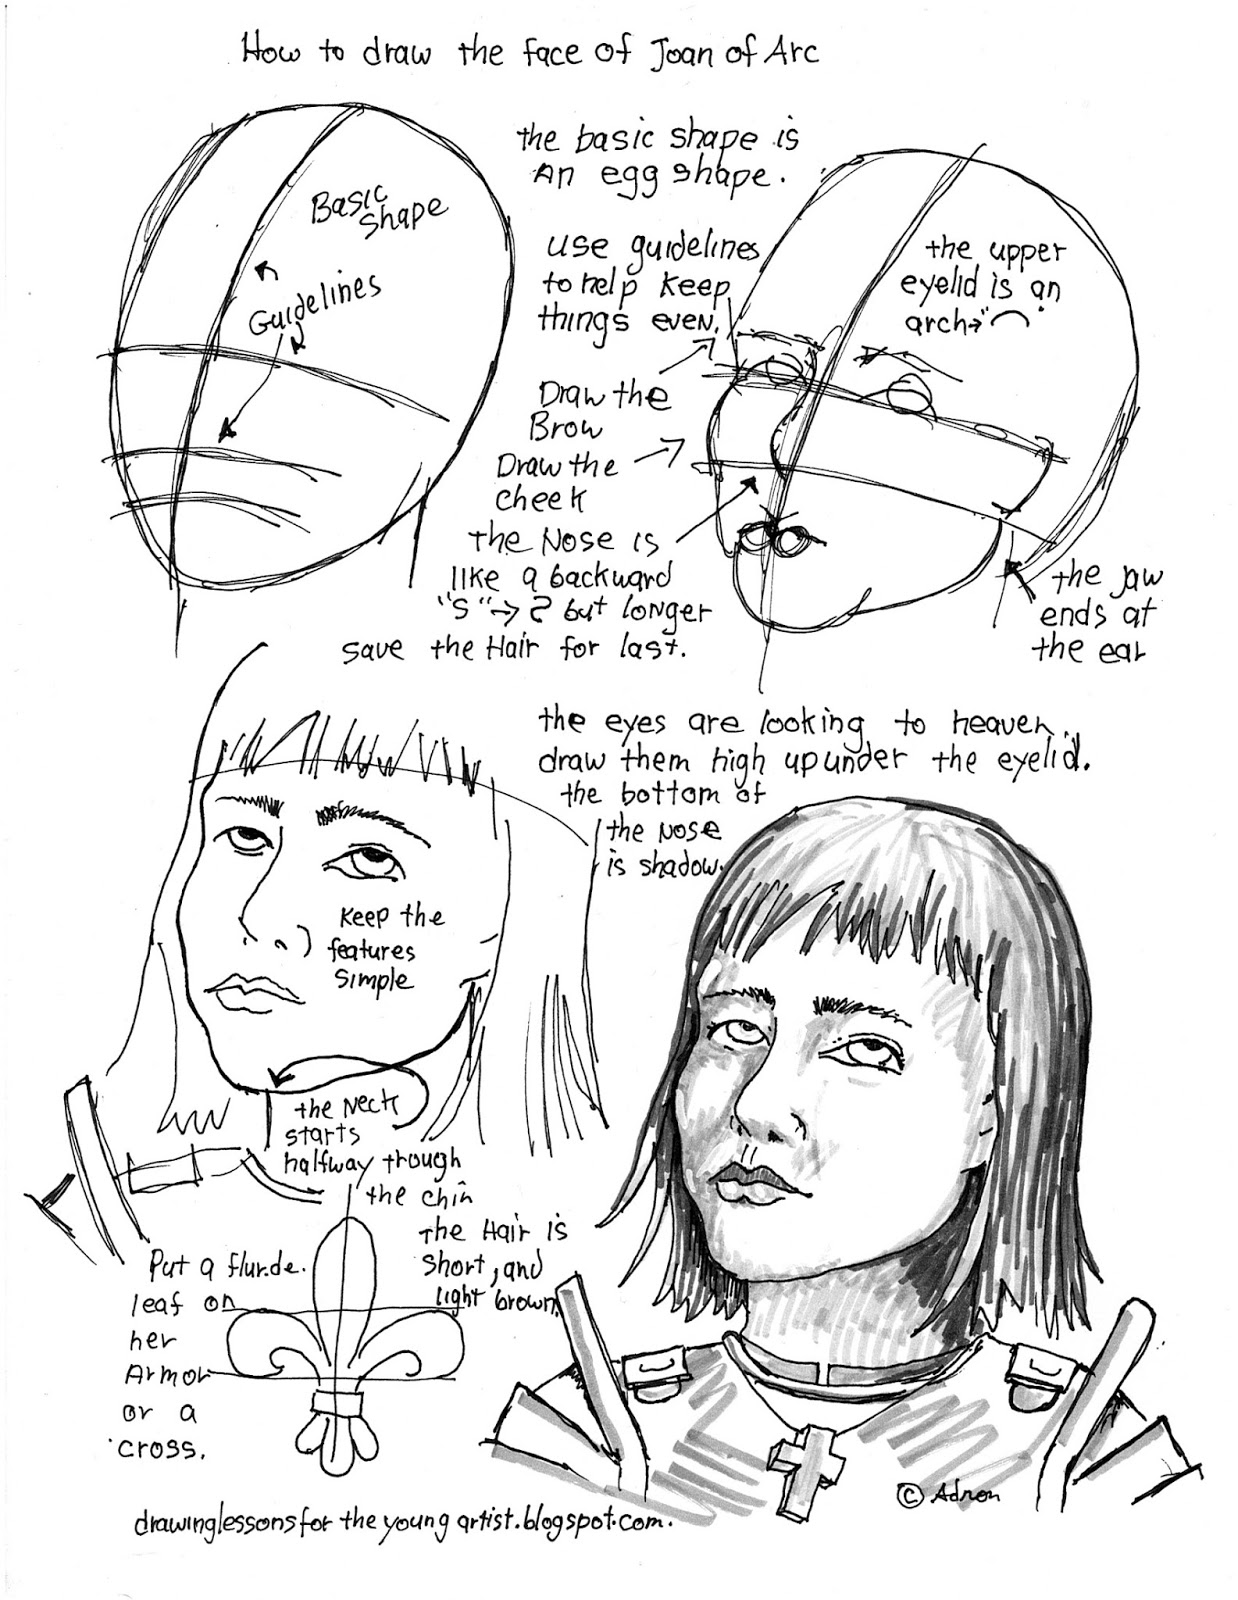 How To Draw Worksheets For The Young Artist How To Draw The Face Of Joan Of Arc Jeanne D Arc